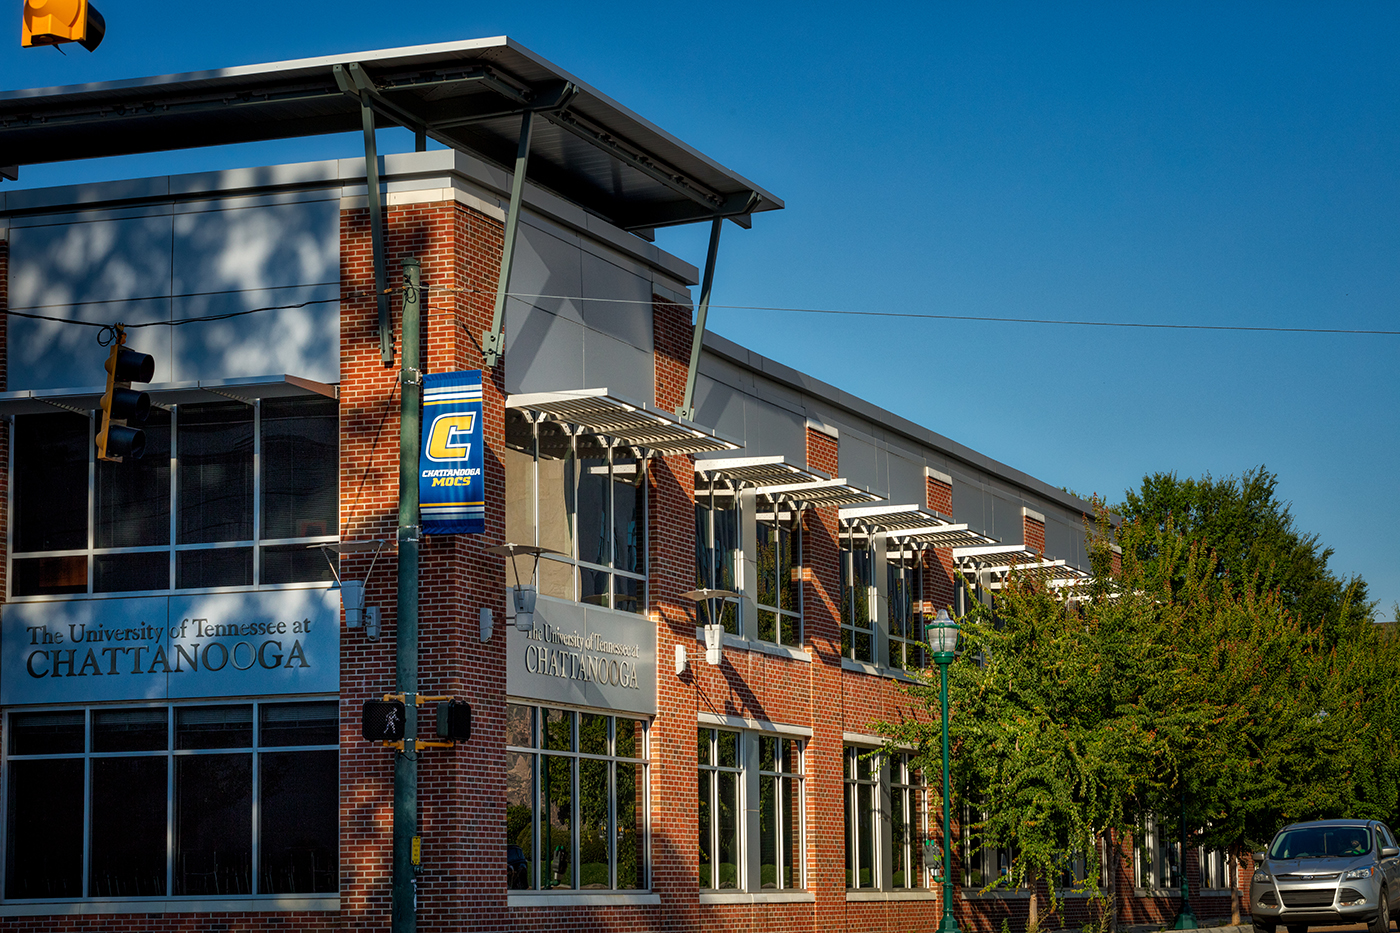 University of Tennessee at Chattanooga - Metropolitan Building